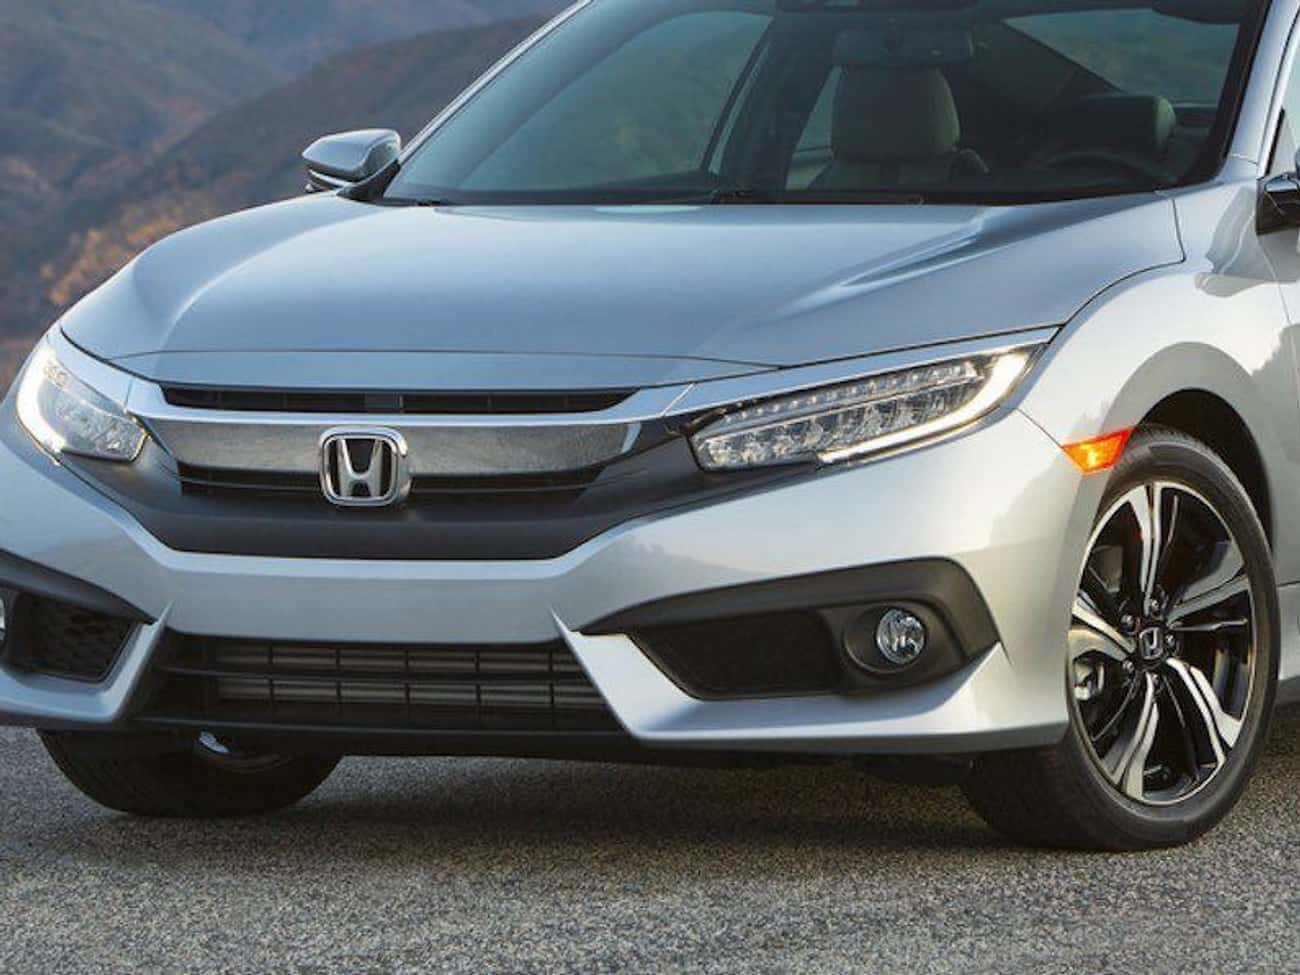 Honda Civic is listed (or ranked) 1 on the list Best Cars for Teens: New and Used, Ranked